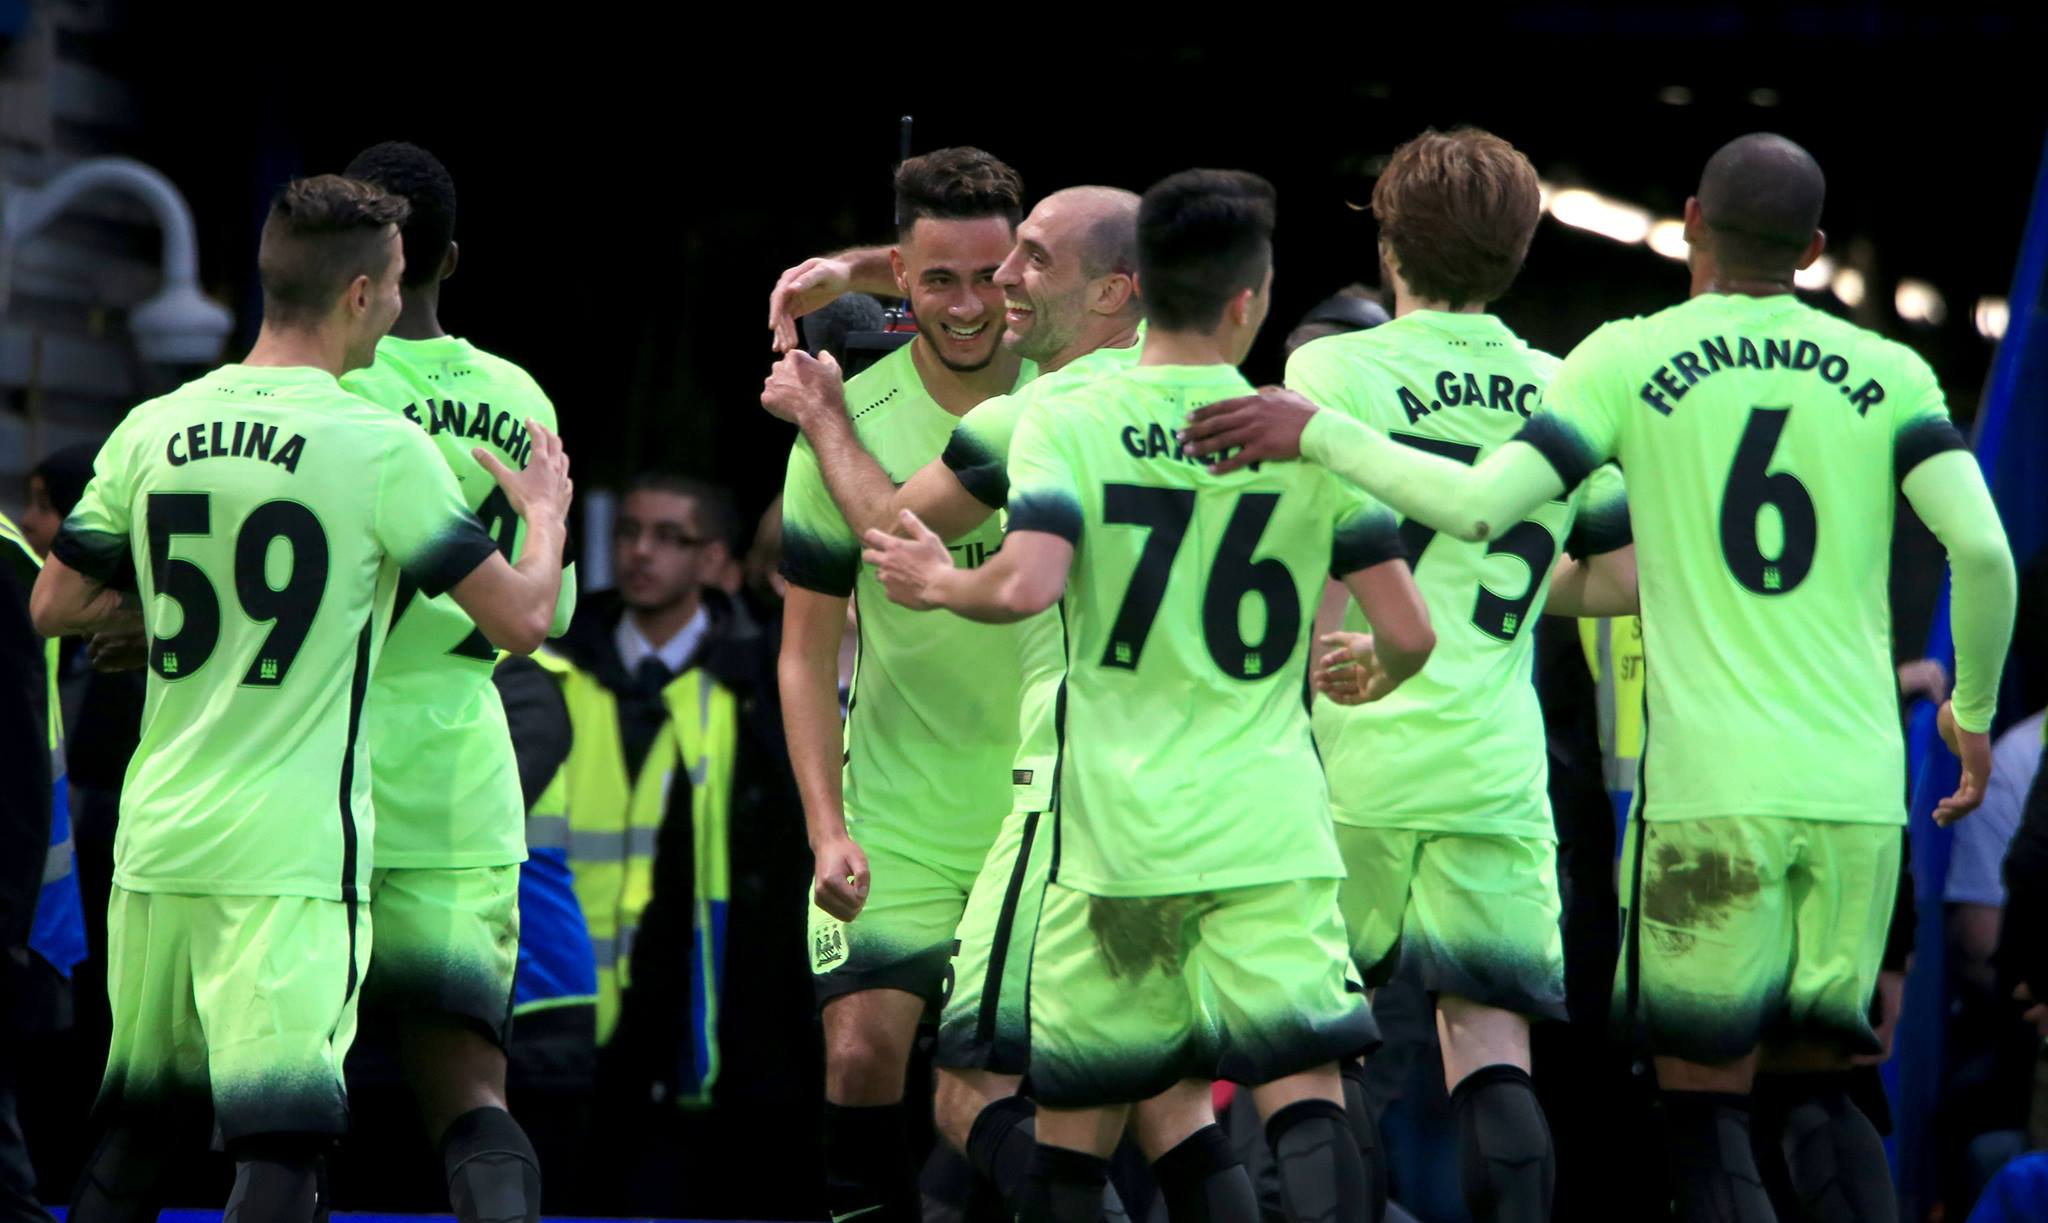 FA Cup delight - David Faupala's equaliser was a bright spot in City's 1-5 defeat at Chelsea. Courtesy@MCFC